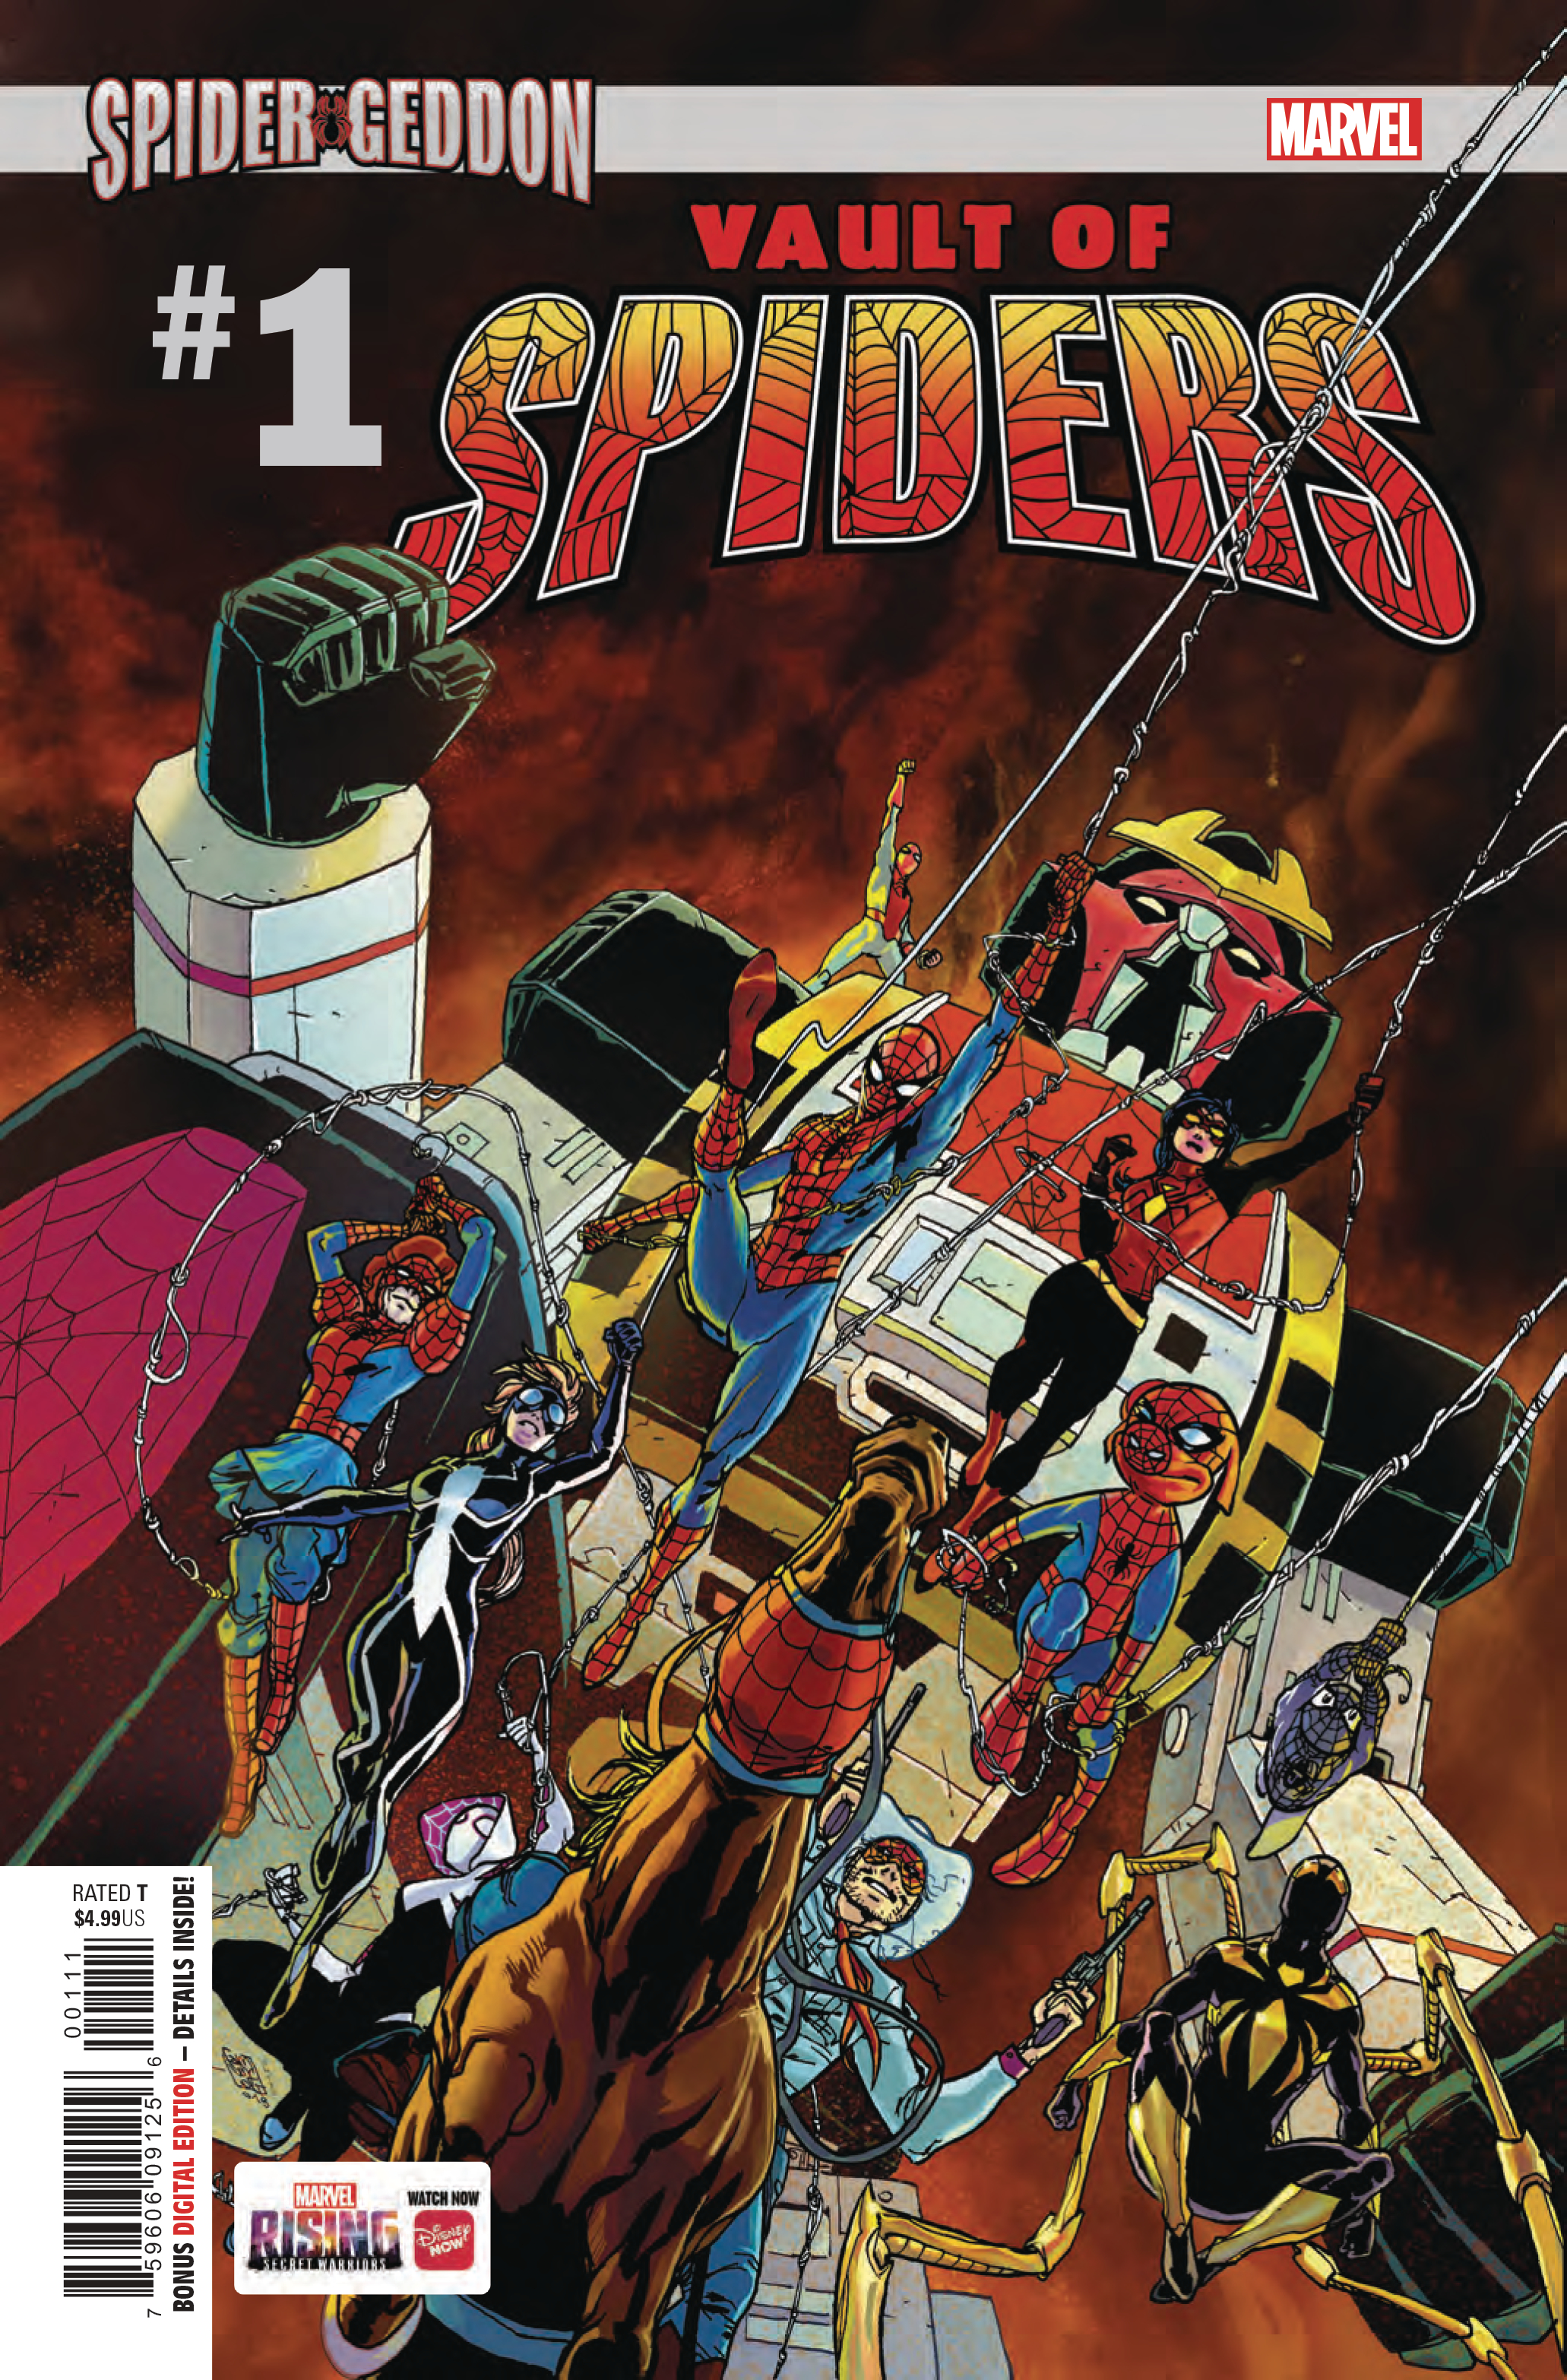 VAULT OF SPIDERS #1 (OF 2)